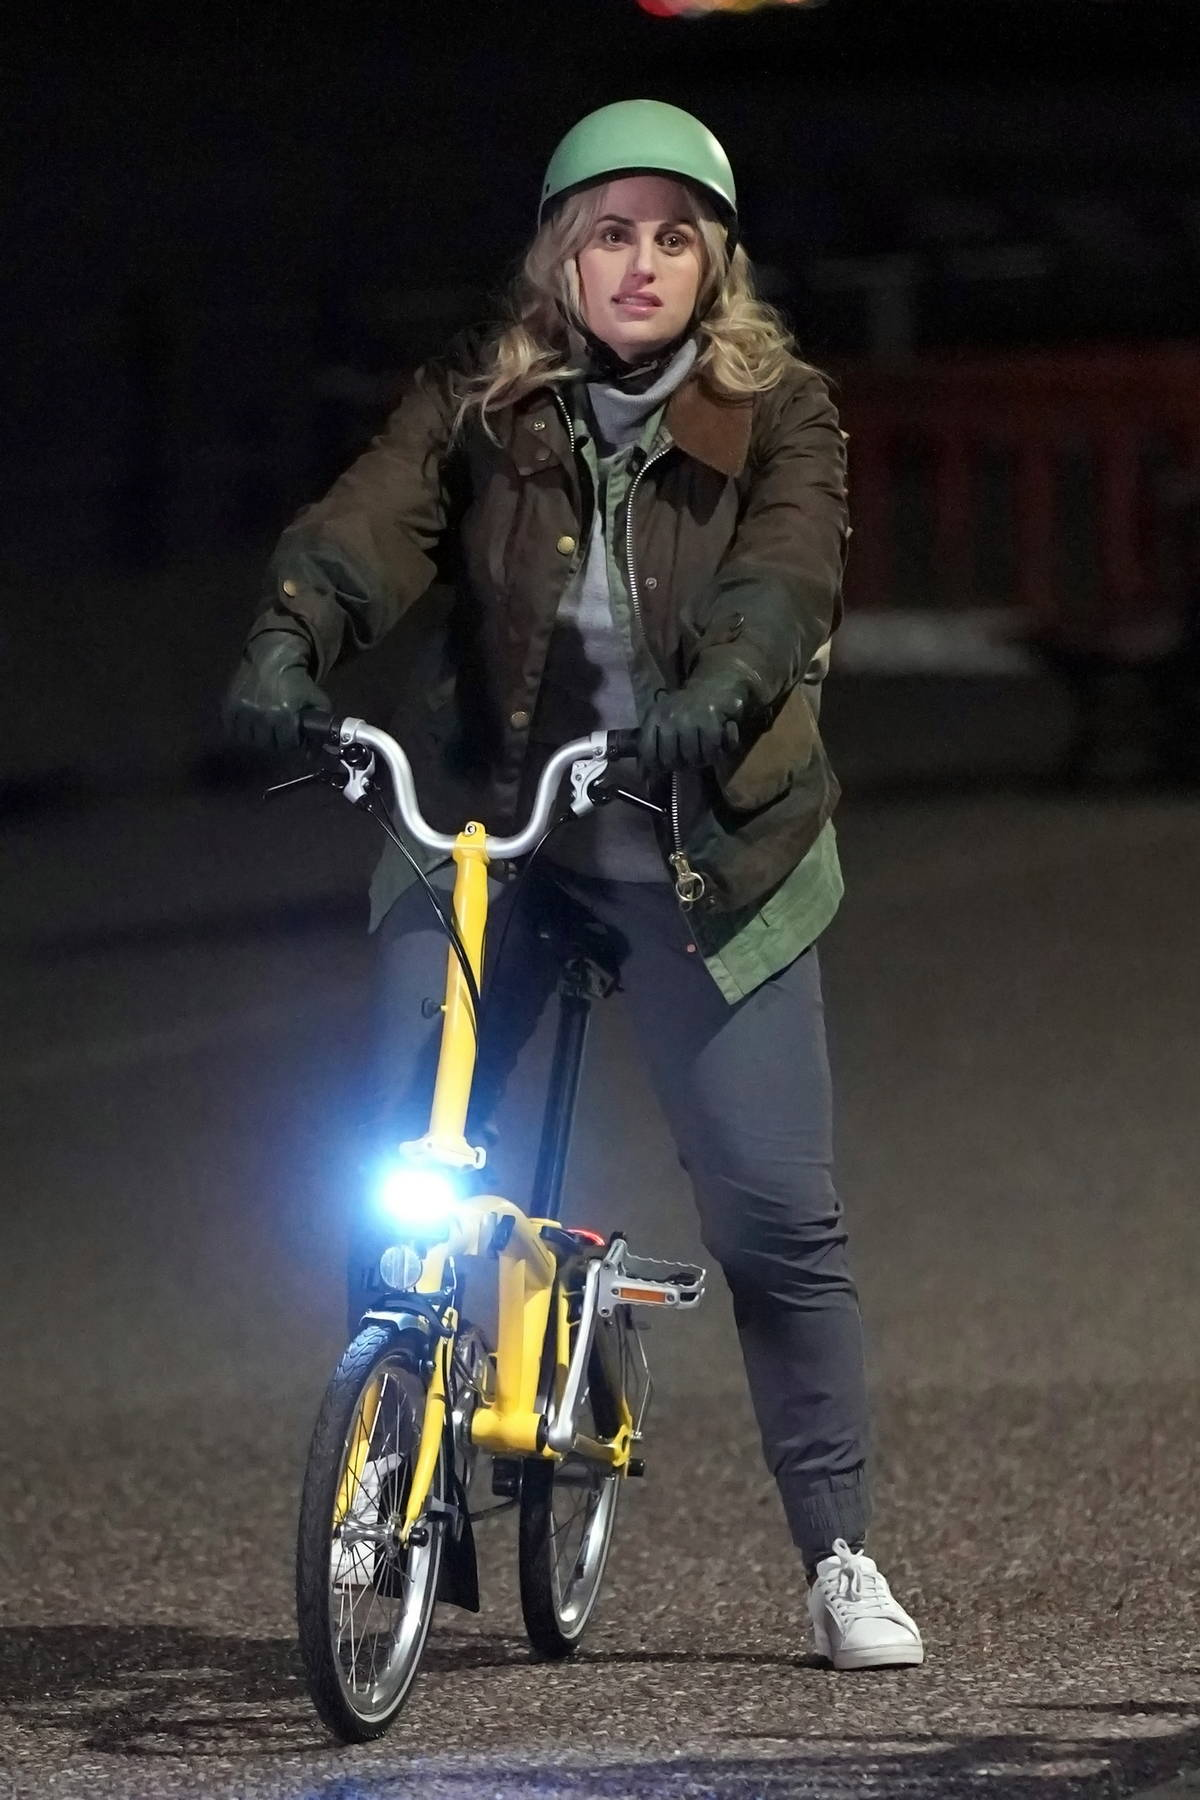 Rebel Wilson gets back on two wheels following her bike accident in London as she films her new movie in Merseyside, UK